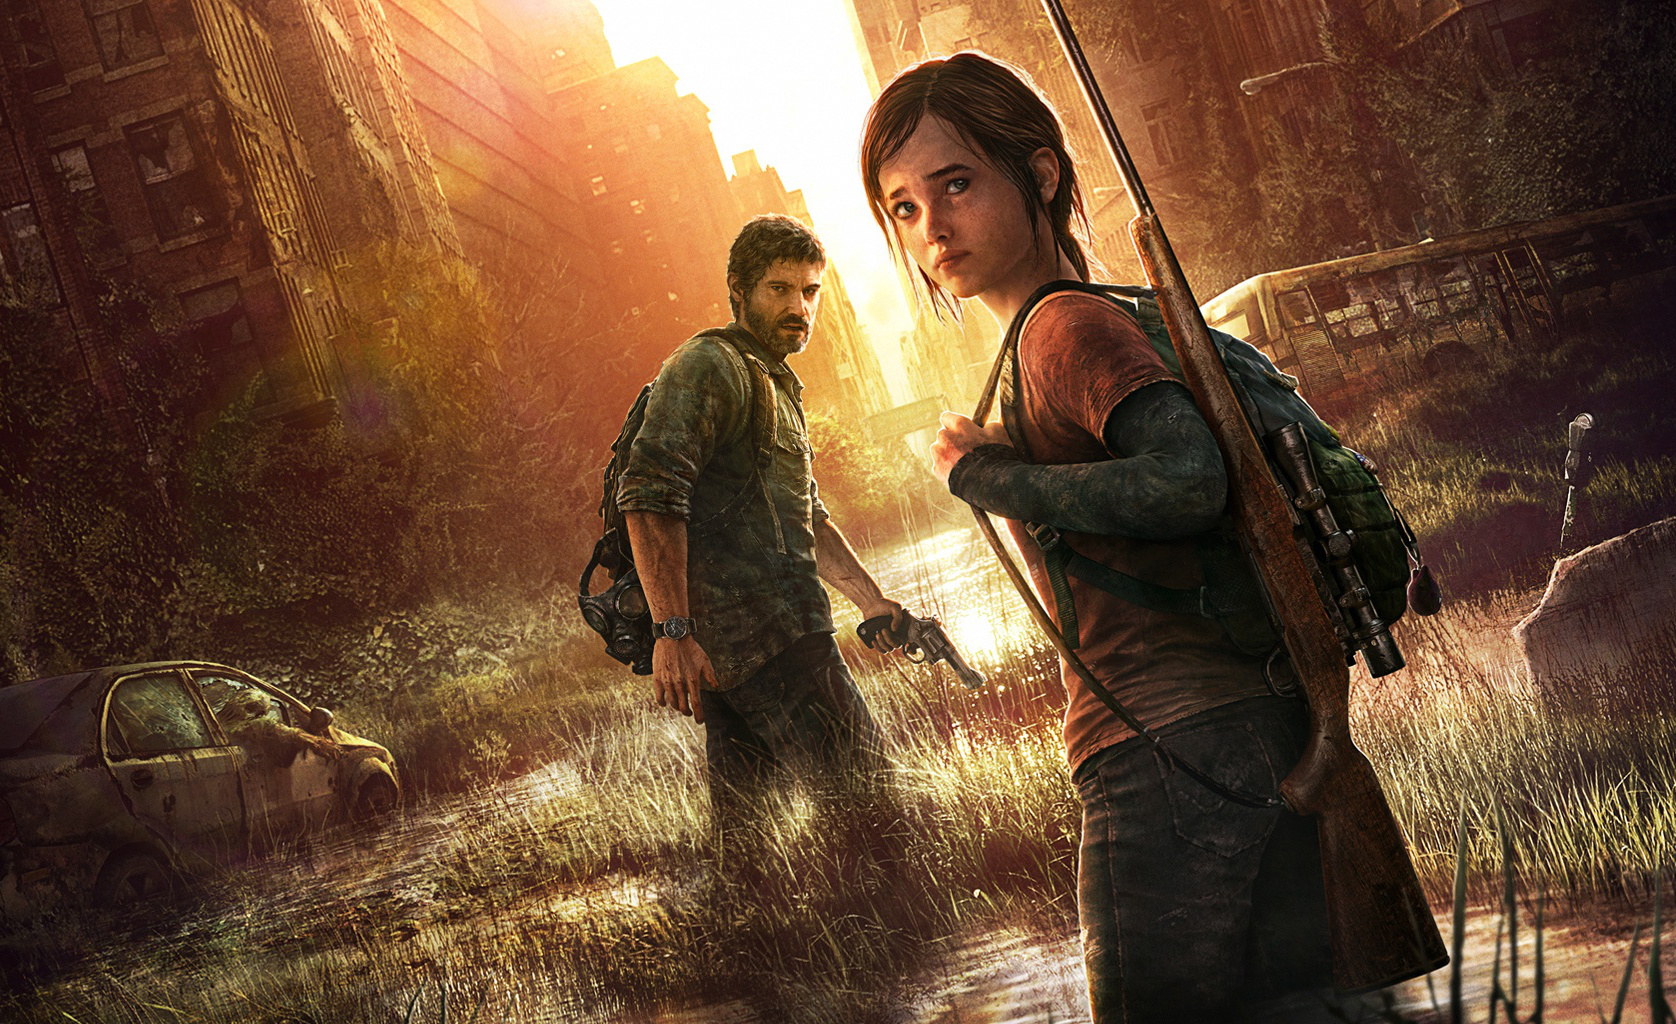 En marcha 'The Last of Us 2'